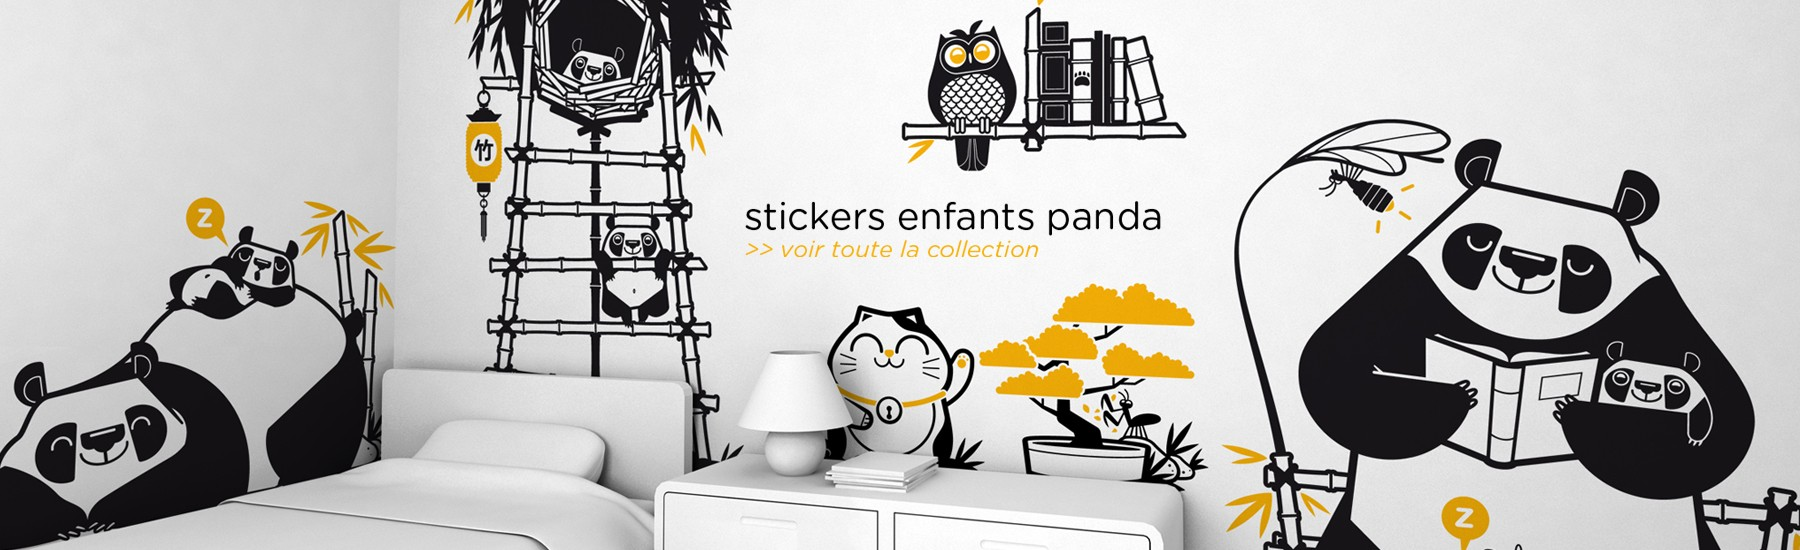 kit-stickers-panda